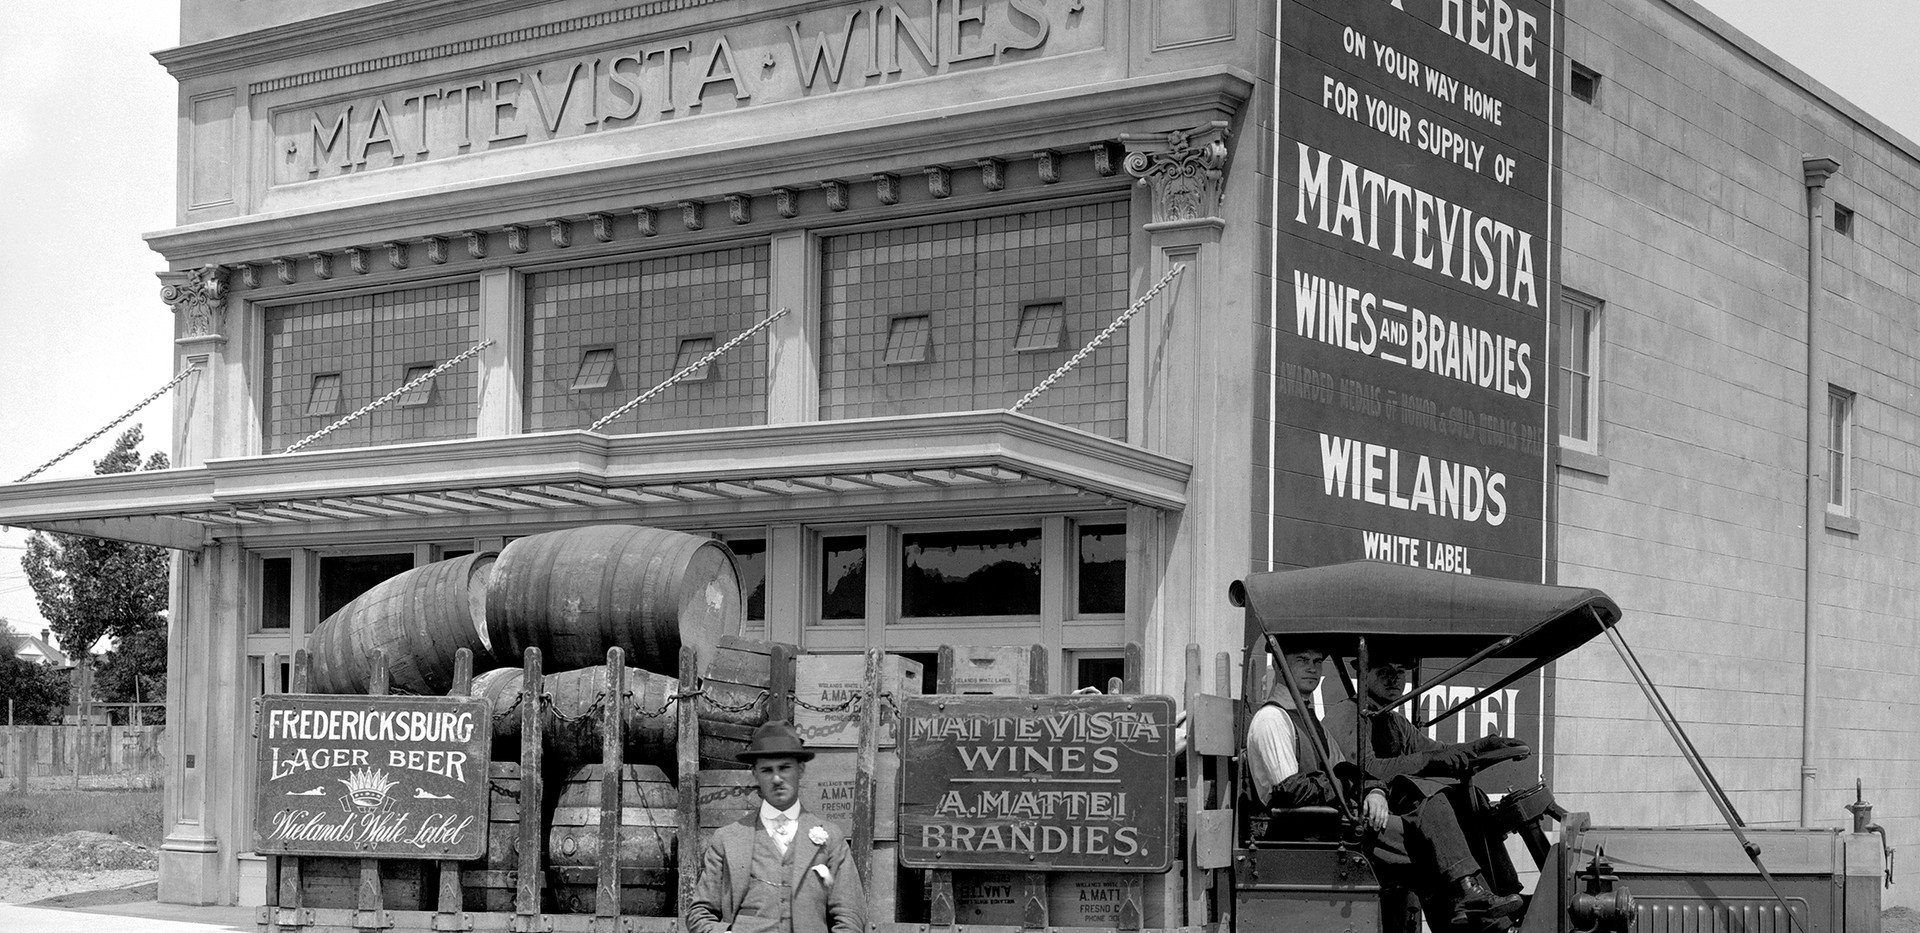 Vineyards and winemaking provided widespread employment and enjoyment for Italian American immigrants. By 1915, grape-based businesses such as Mattevista Wines, founded by Swiss Italian, Andrew Mattei, Roma/Cella and Cribari were regarded as some of the largest in the state.